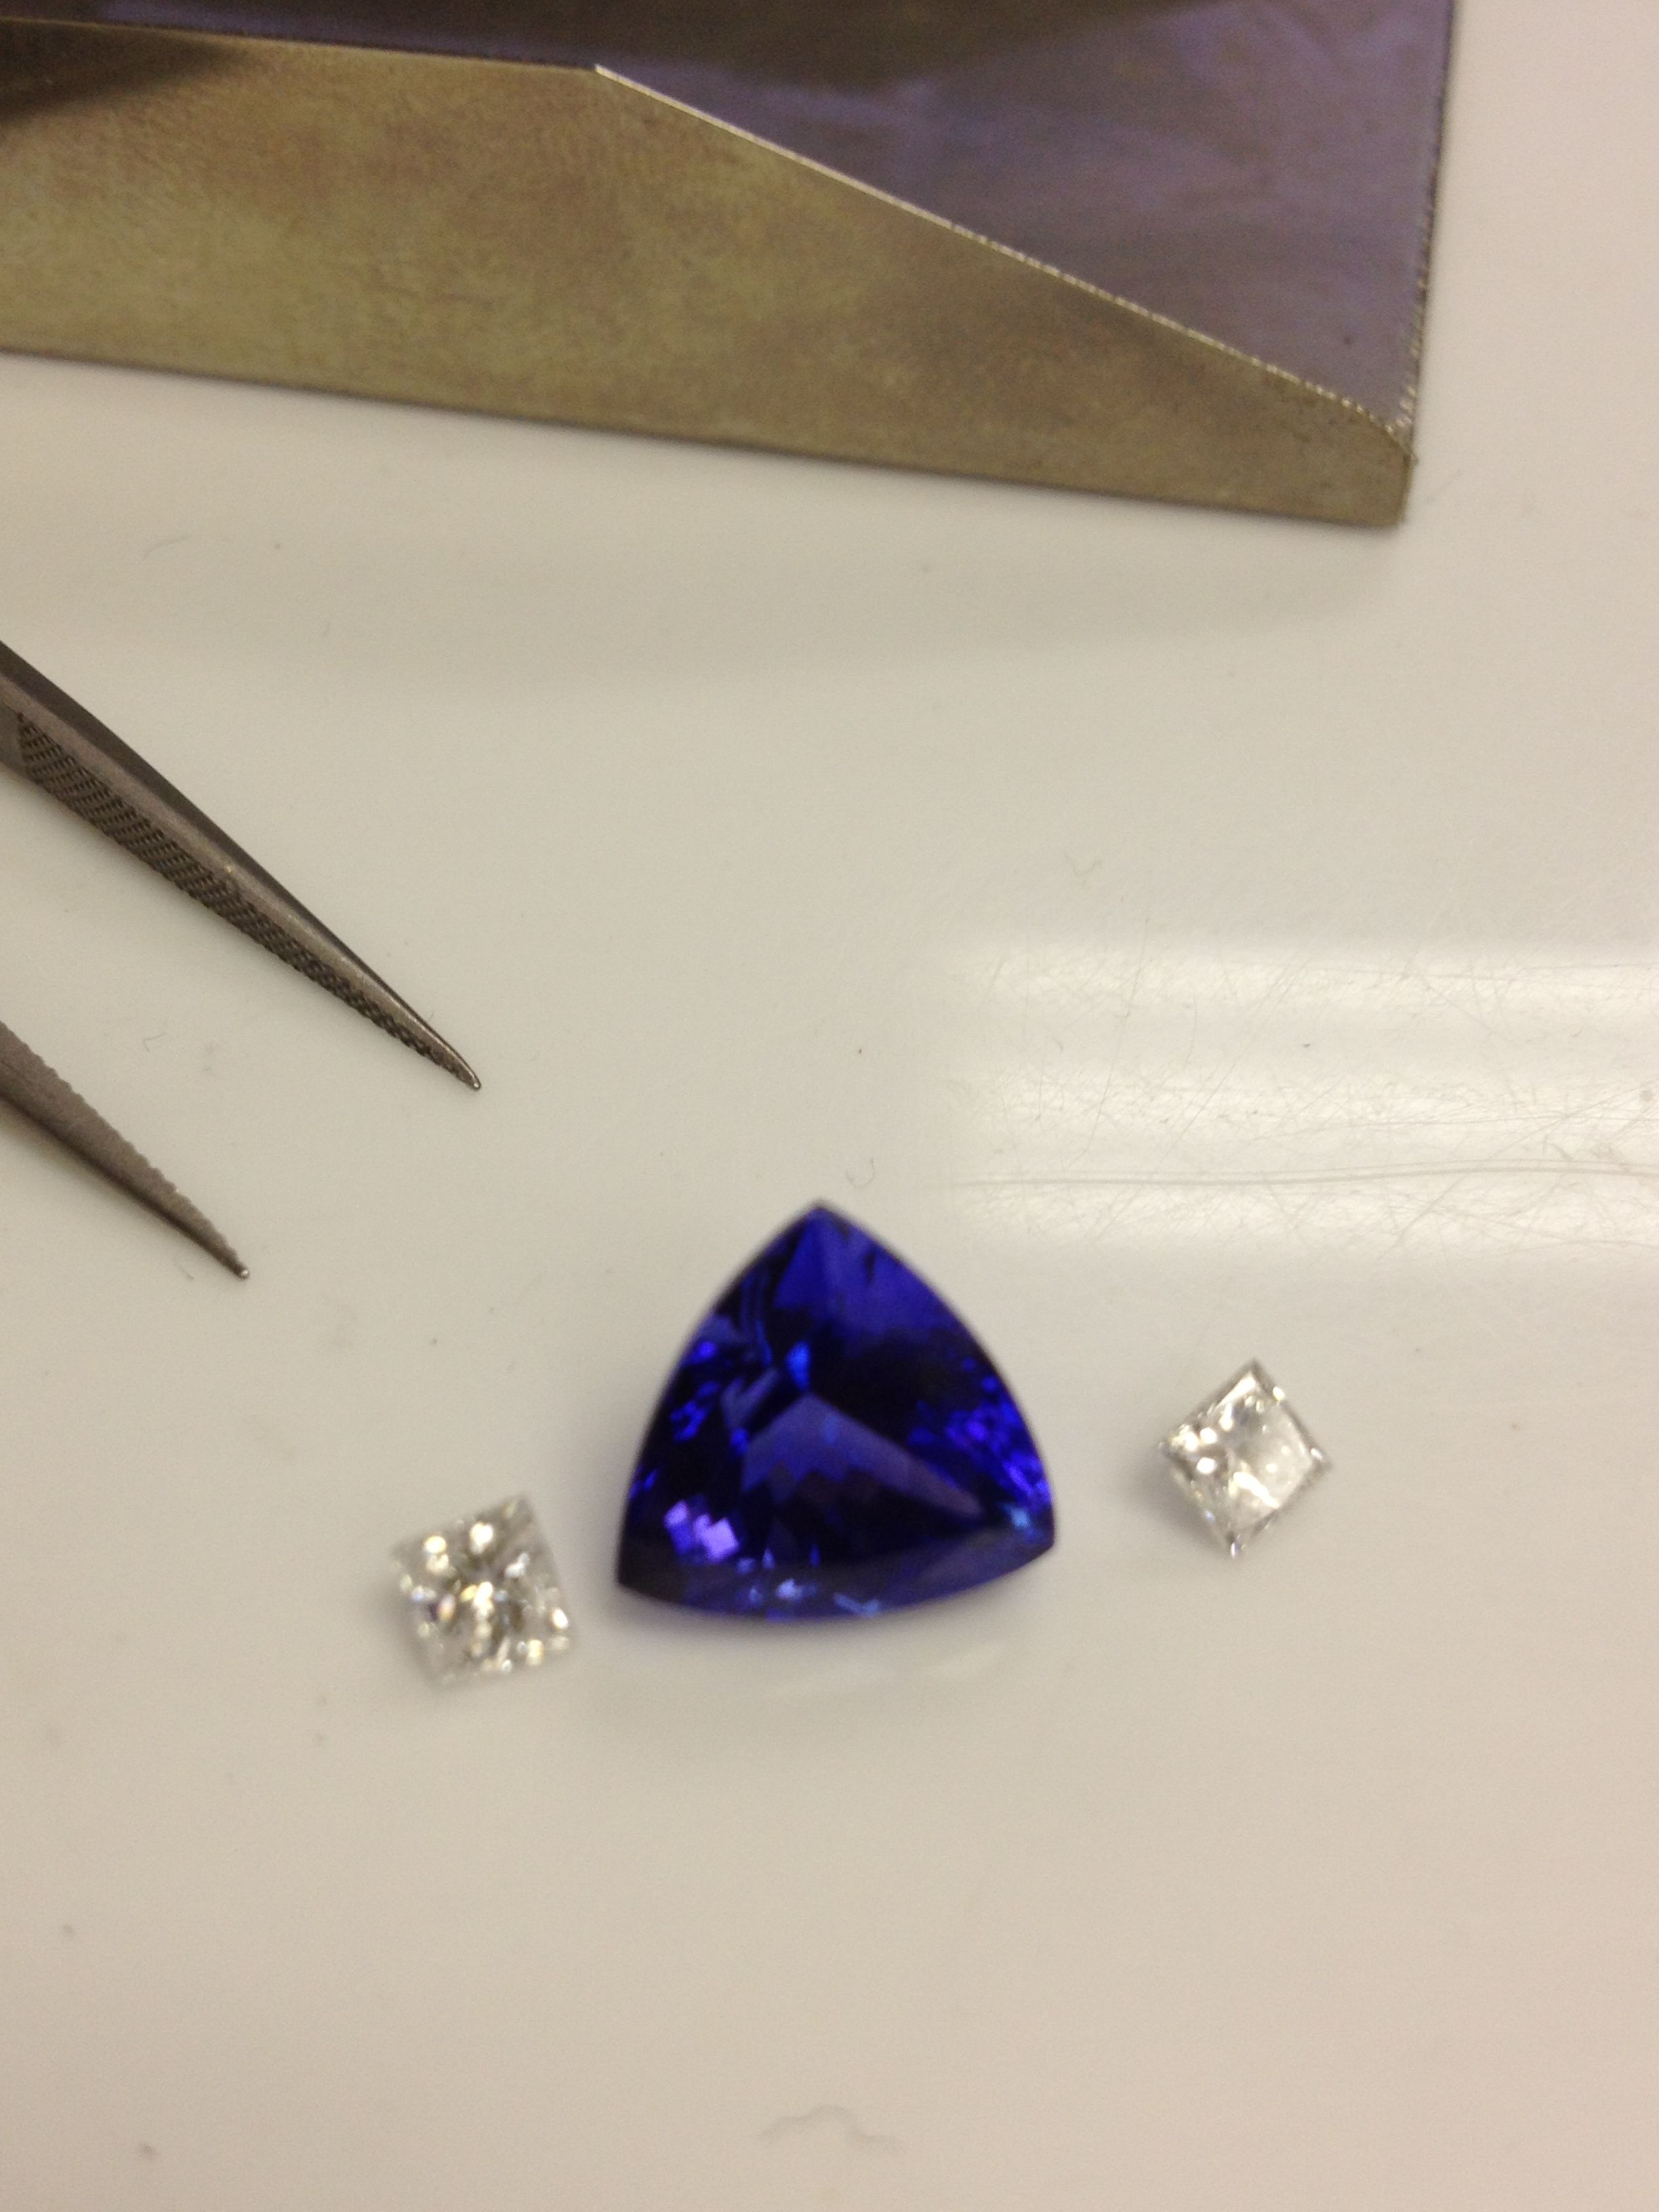 cut carat tw w yellow diamond ring tanzanite three princess carats row center t with l grams gold